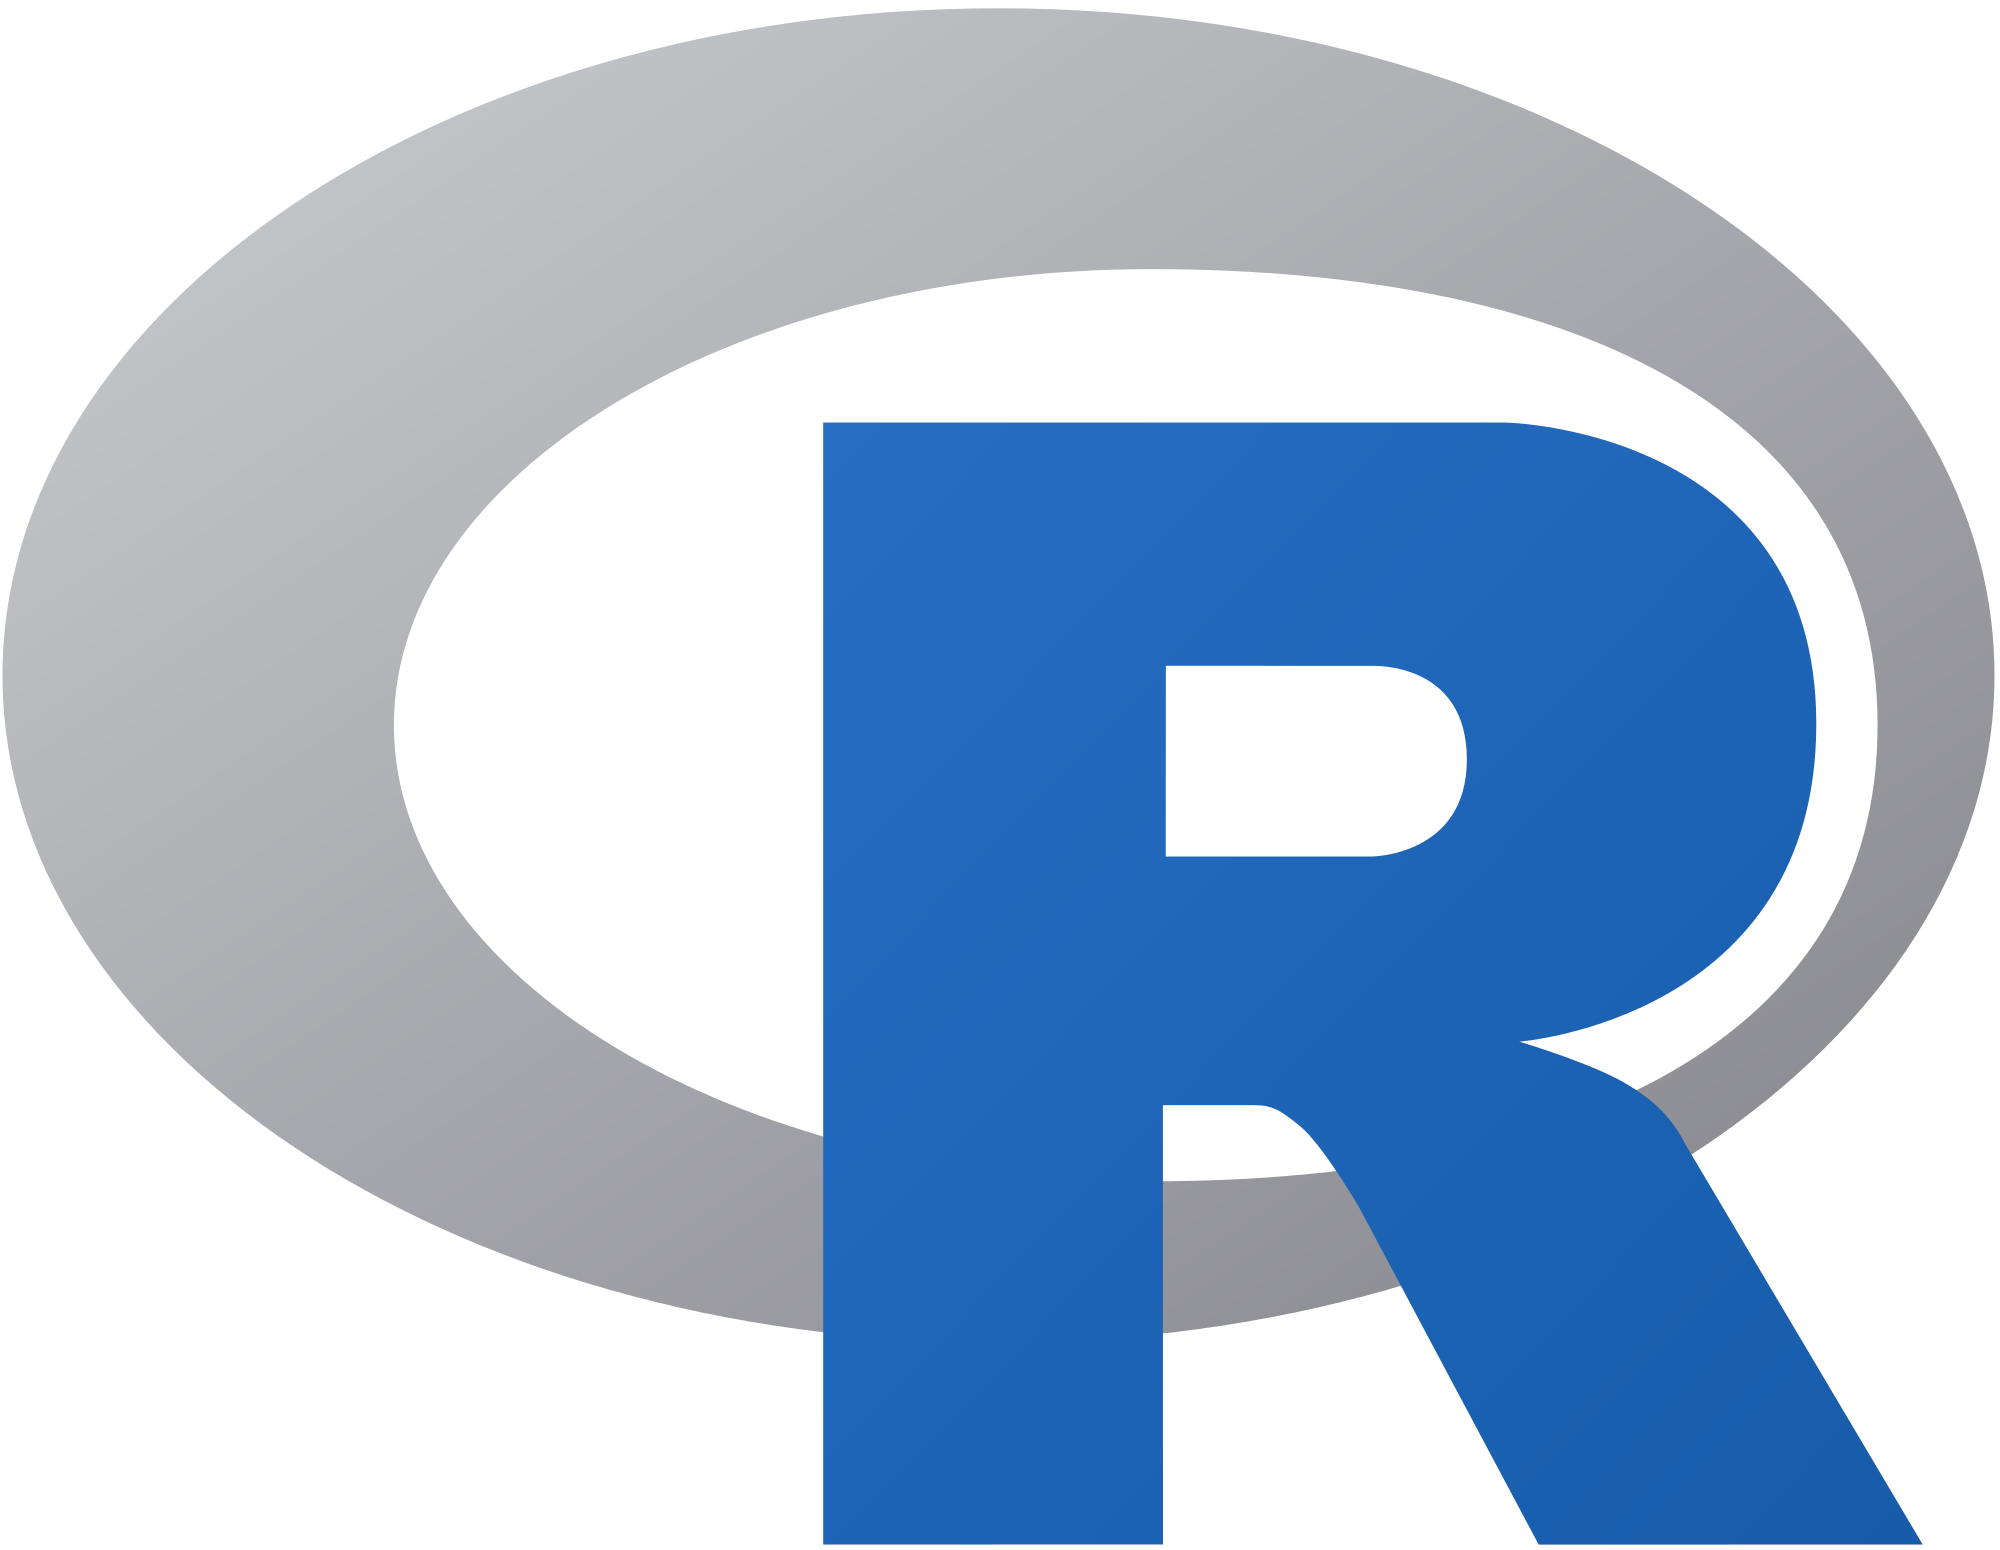 Svg objects programming. R language wikipedia logosvg